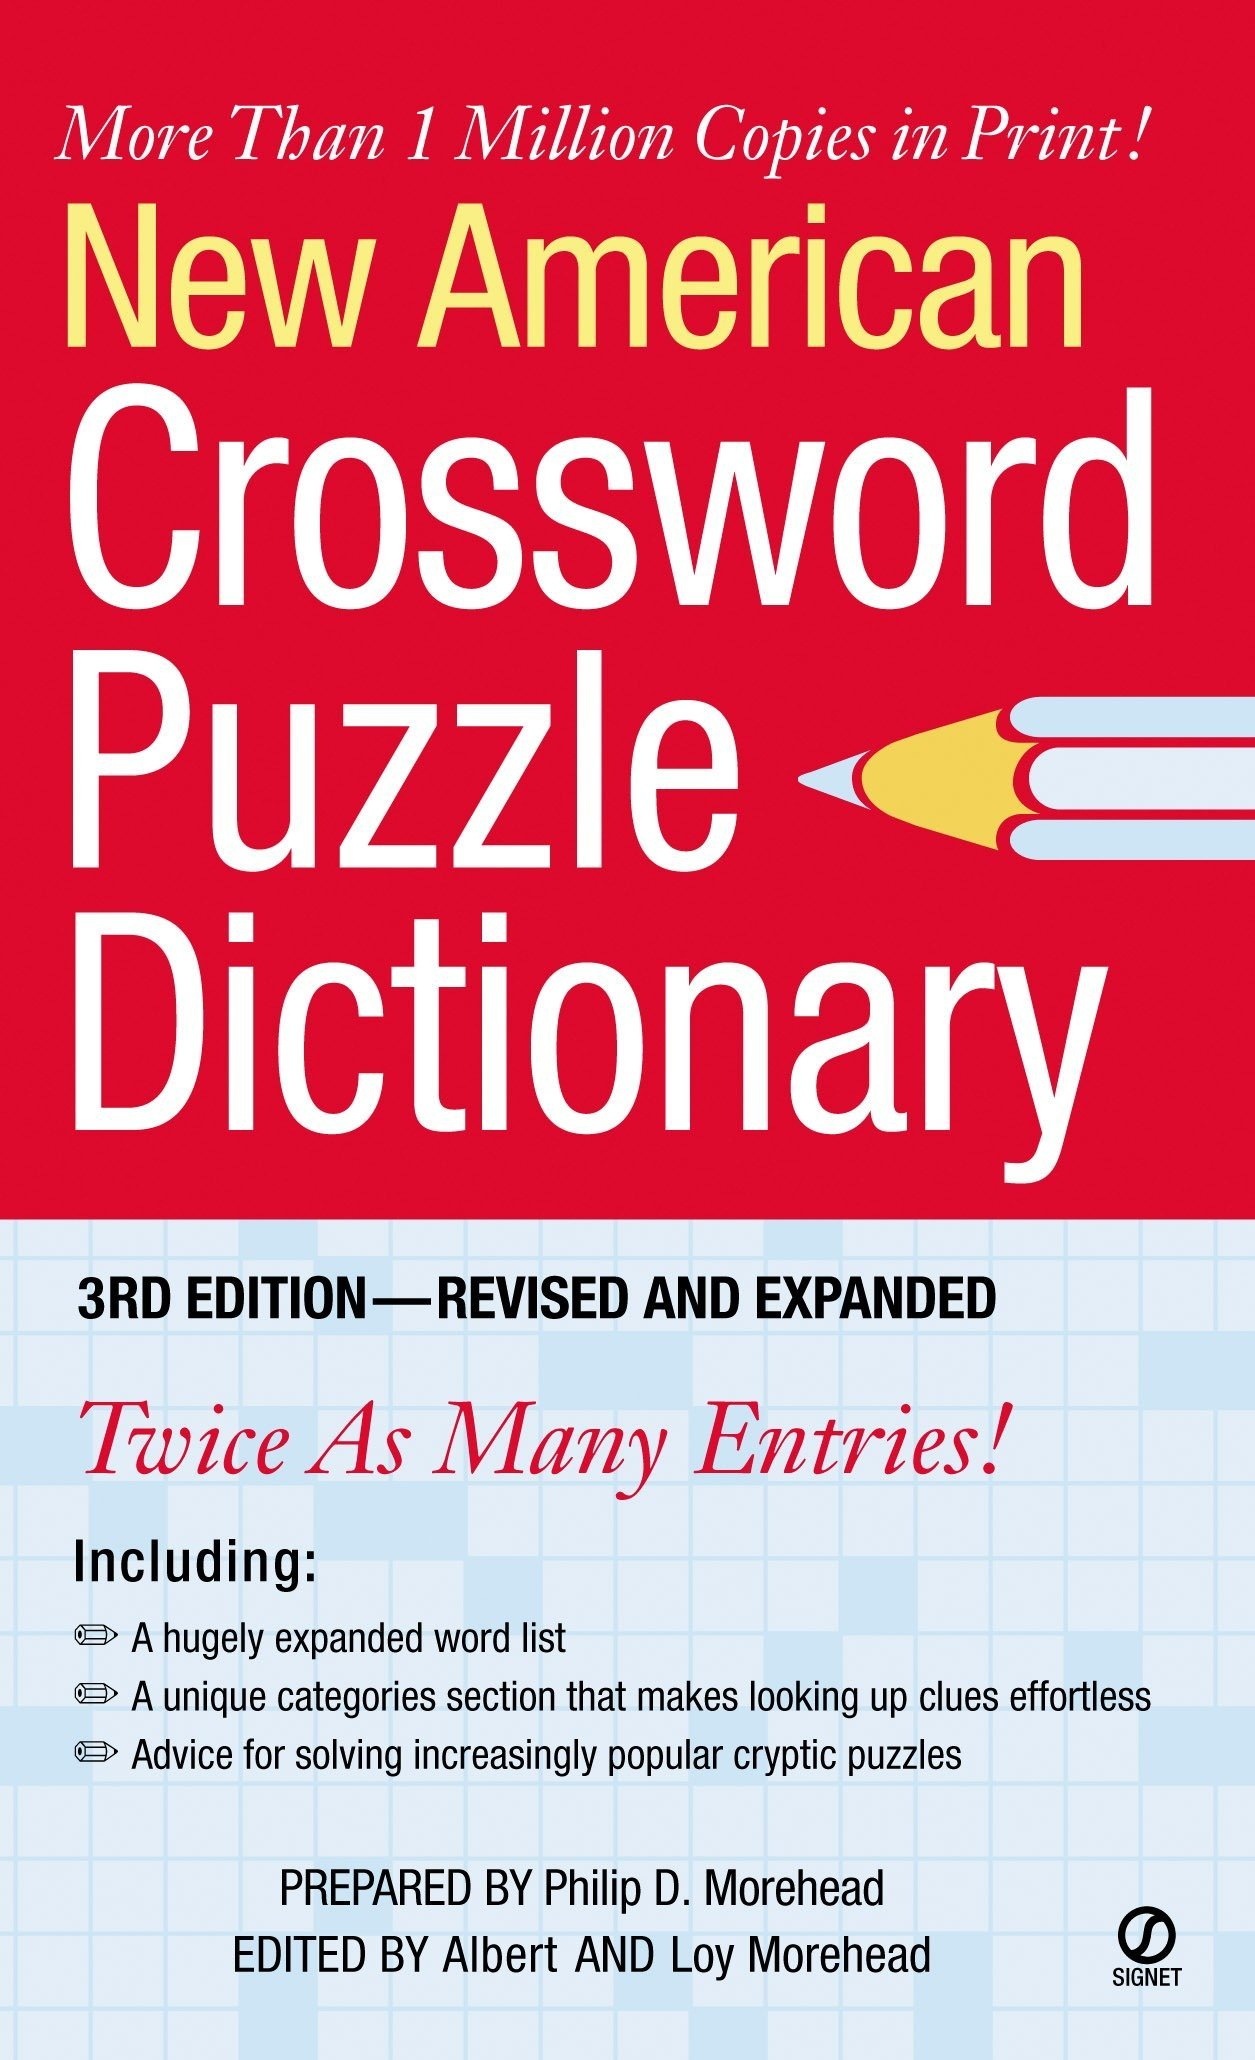 New American Crossword Puzzle Dictionary: 3rd Edition--Revised and Expanded:  Philip D. Morehead, Albert H. Morehead, Loy Morehead: 9780451212559: ...